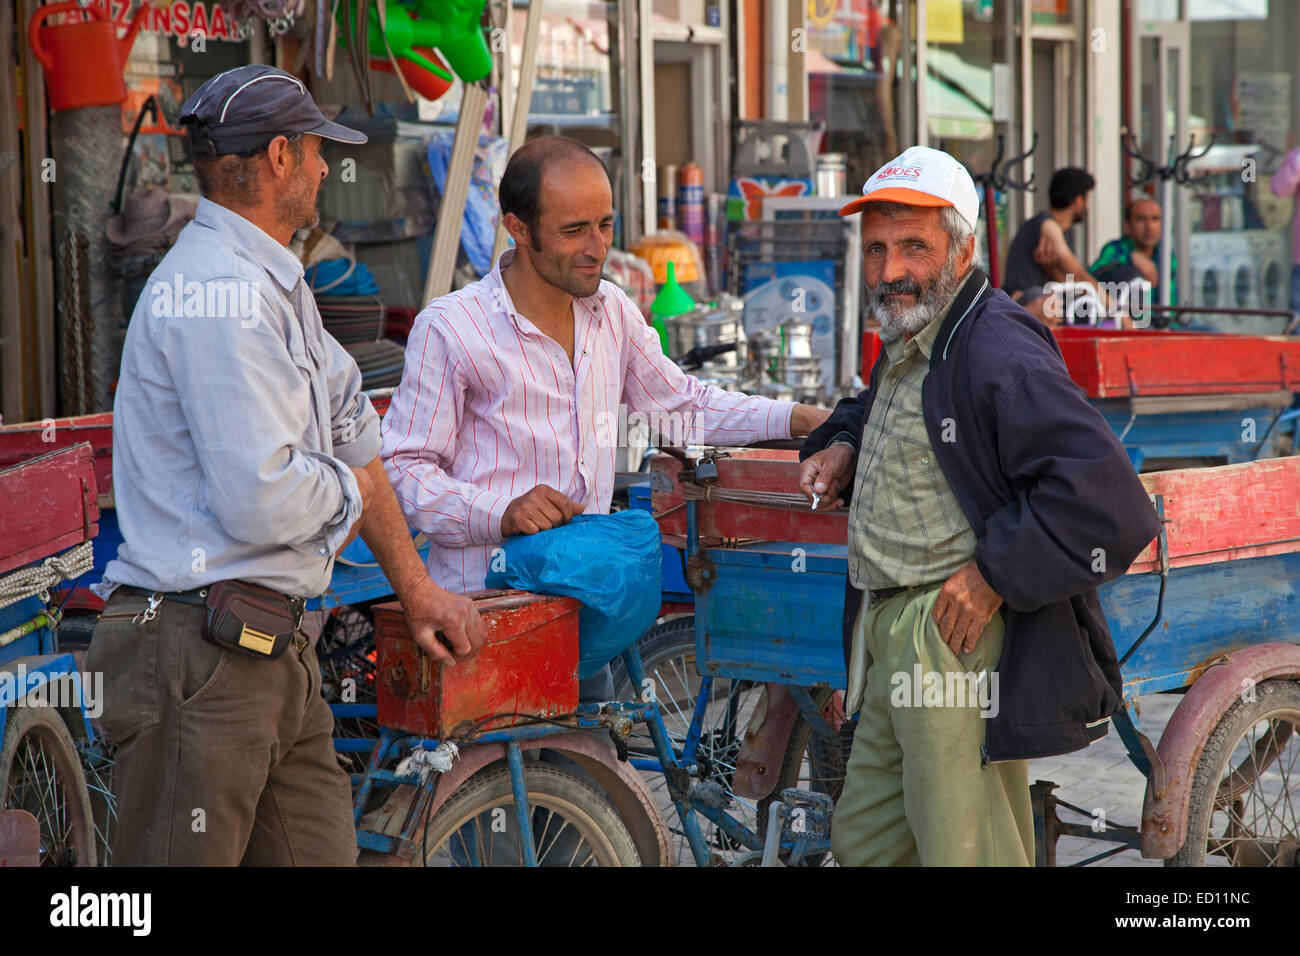 Turkish men chatting in a shopping street in the city Van, Eastern Turkey Stock Photo